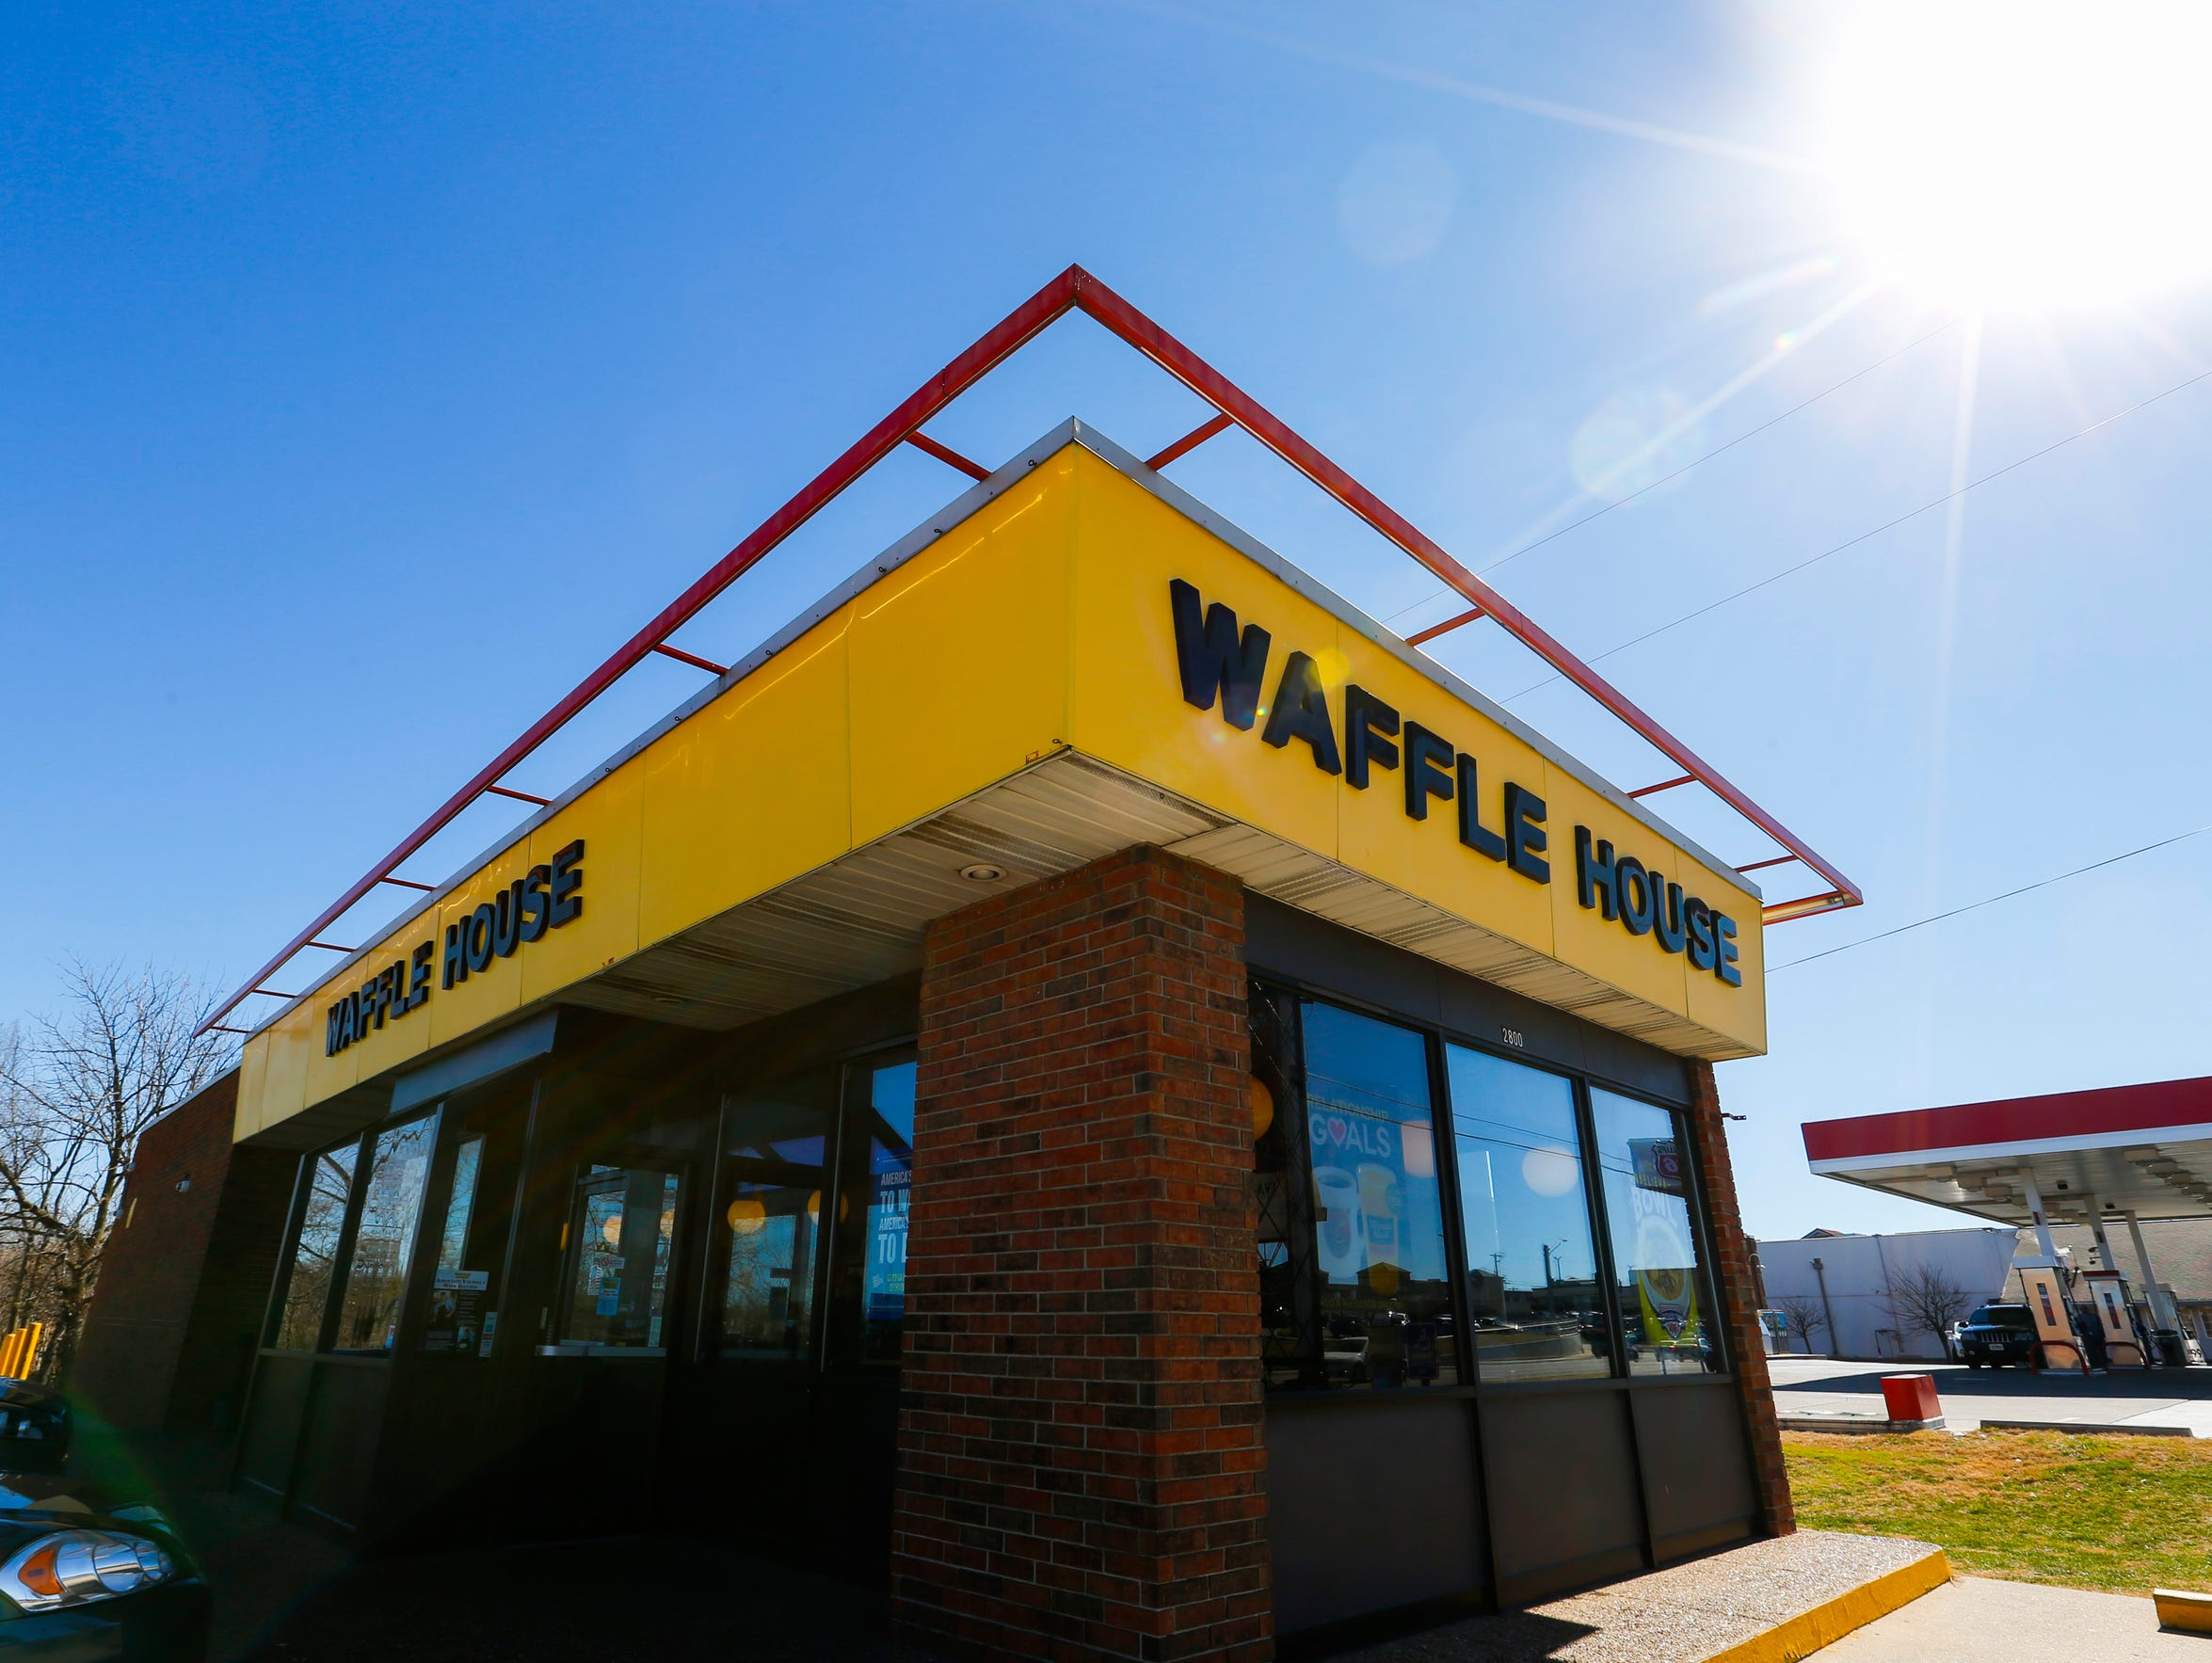 The Waffle House on North Kansas Expressway in Springfield,